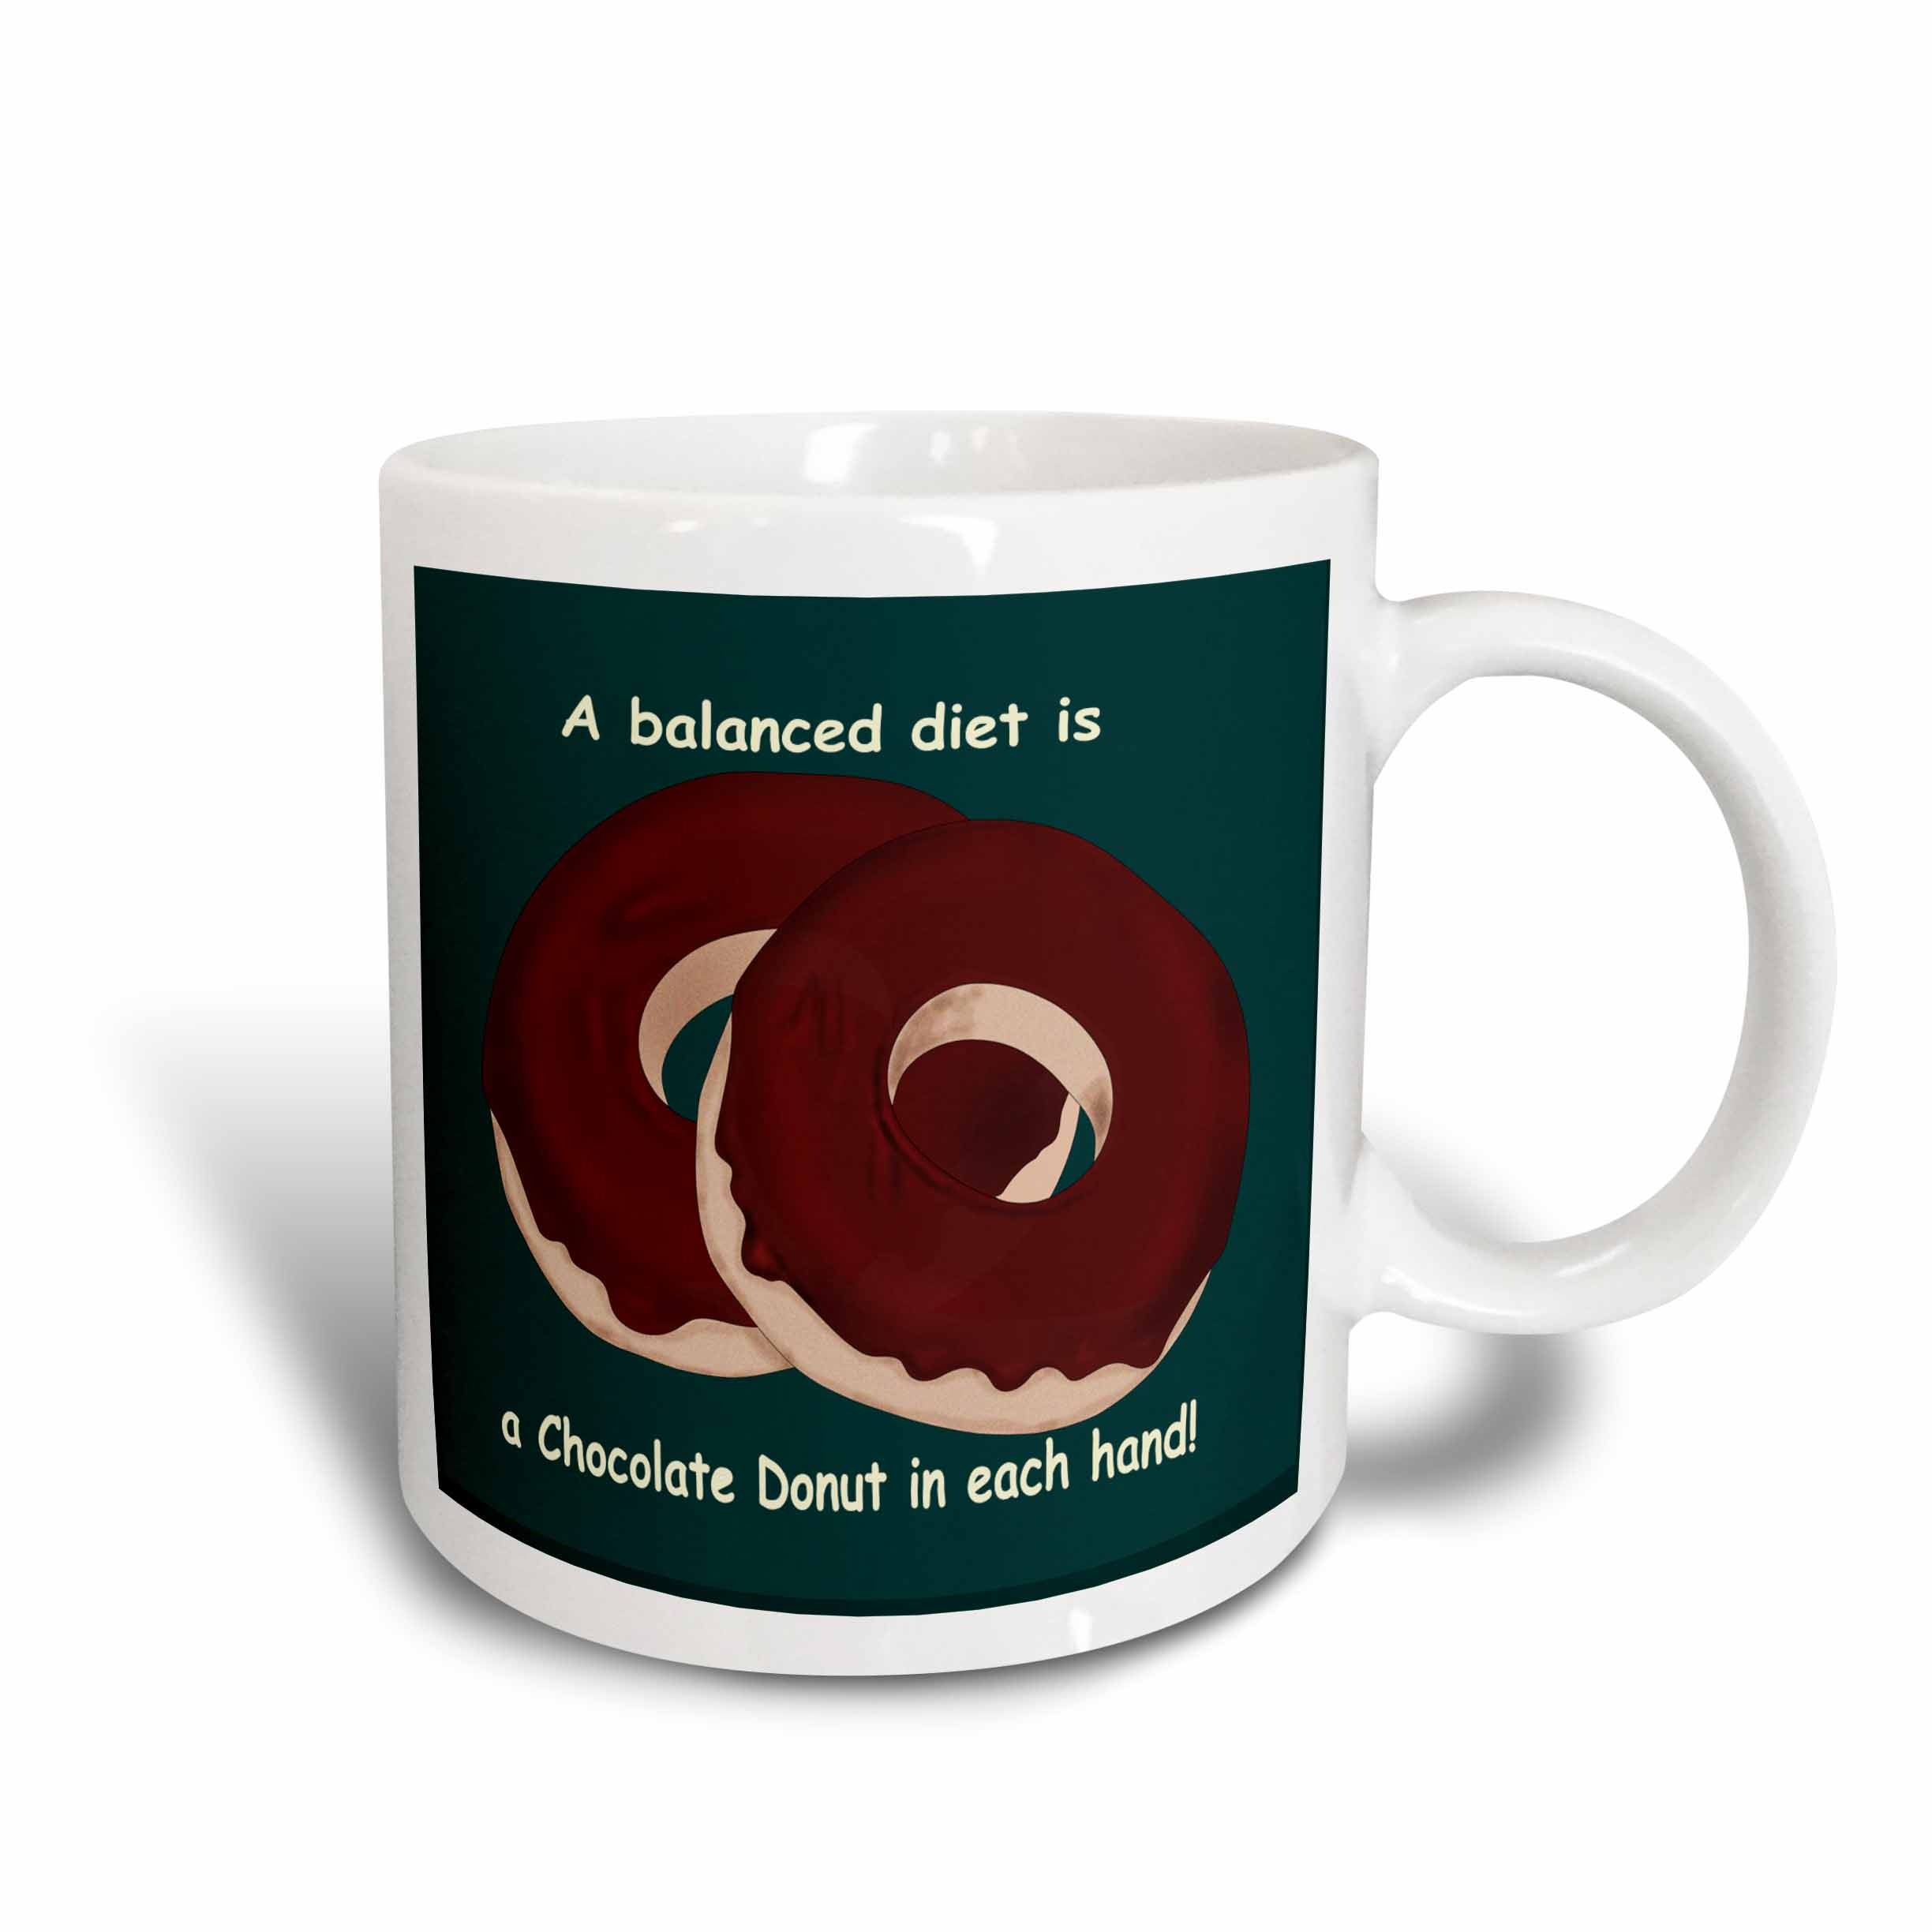 3dRose A Balanced Meal a Chocolate Donut in each hand , Ceramic Mug, 15-ounce